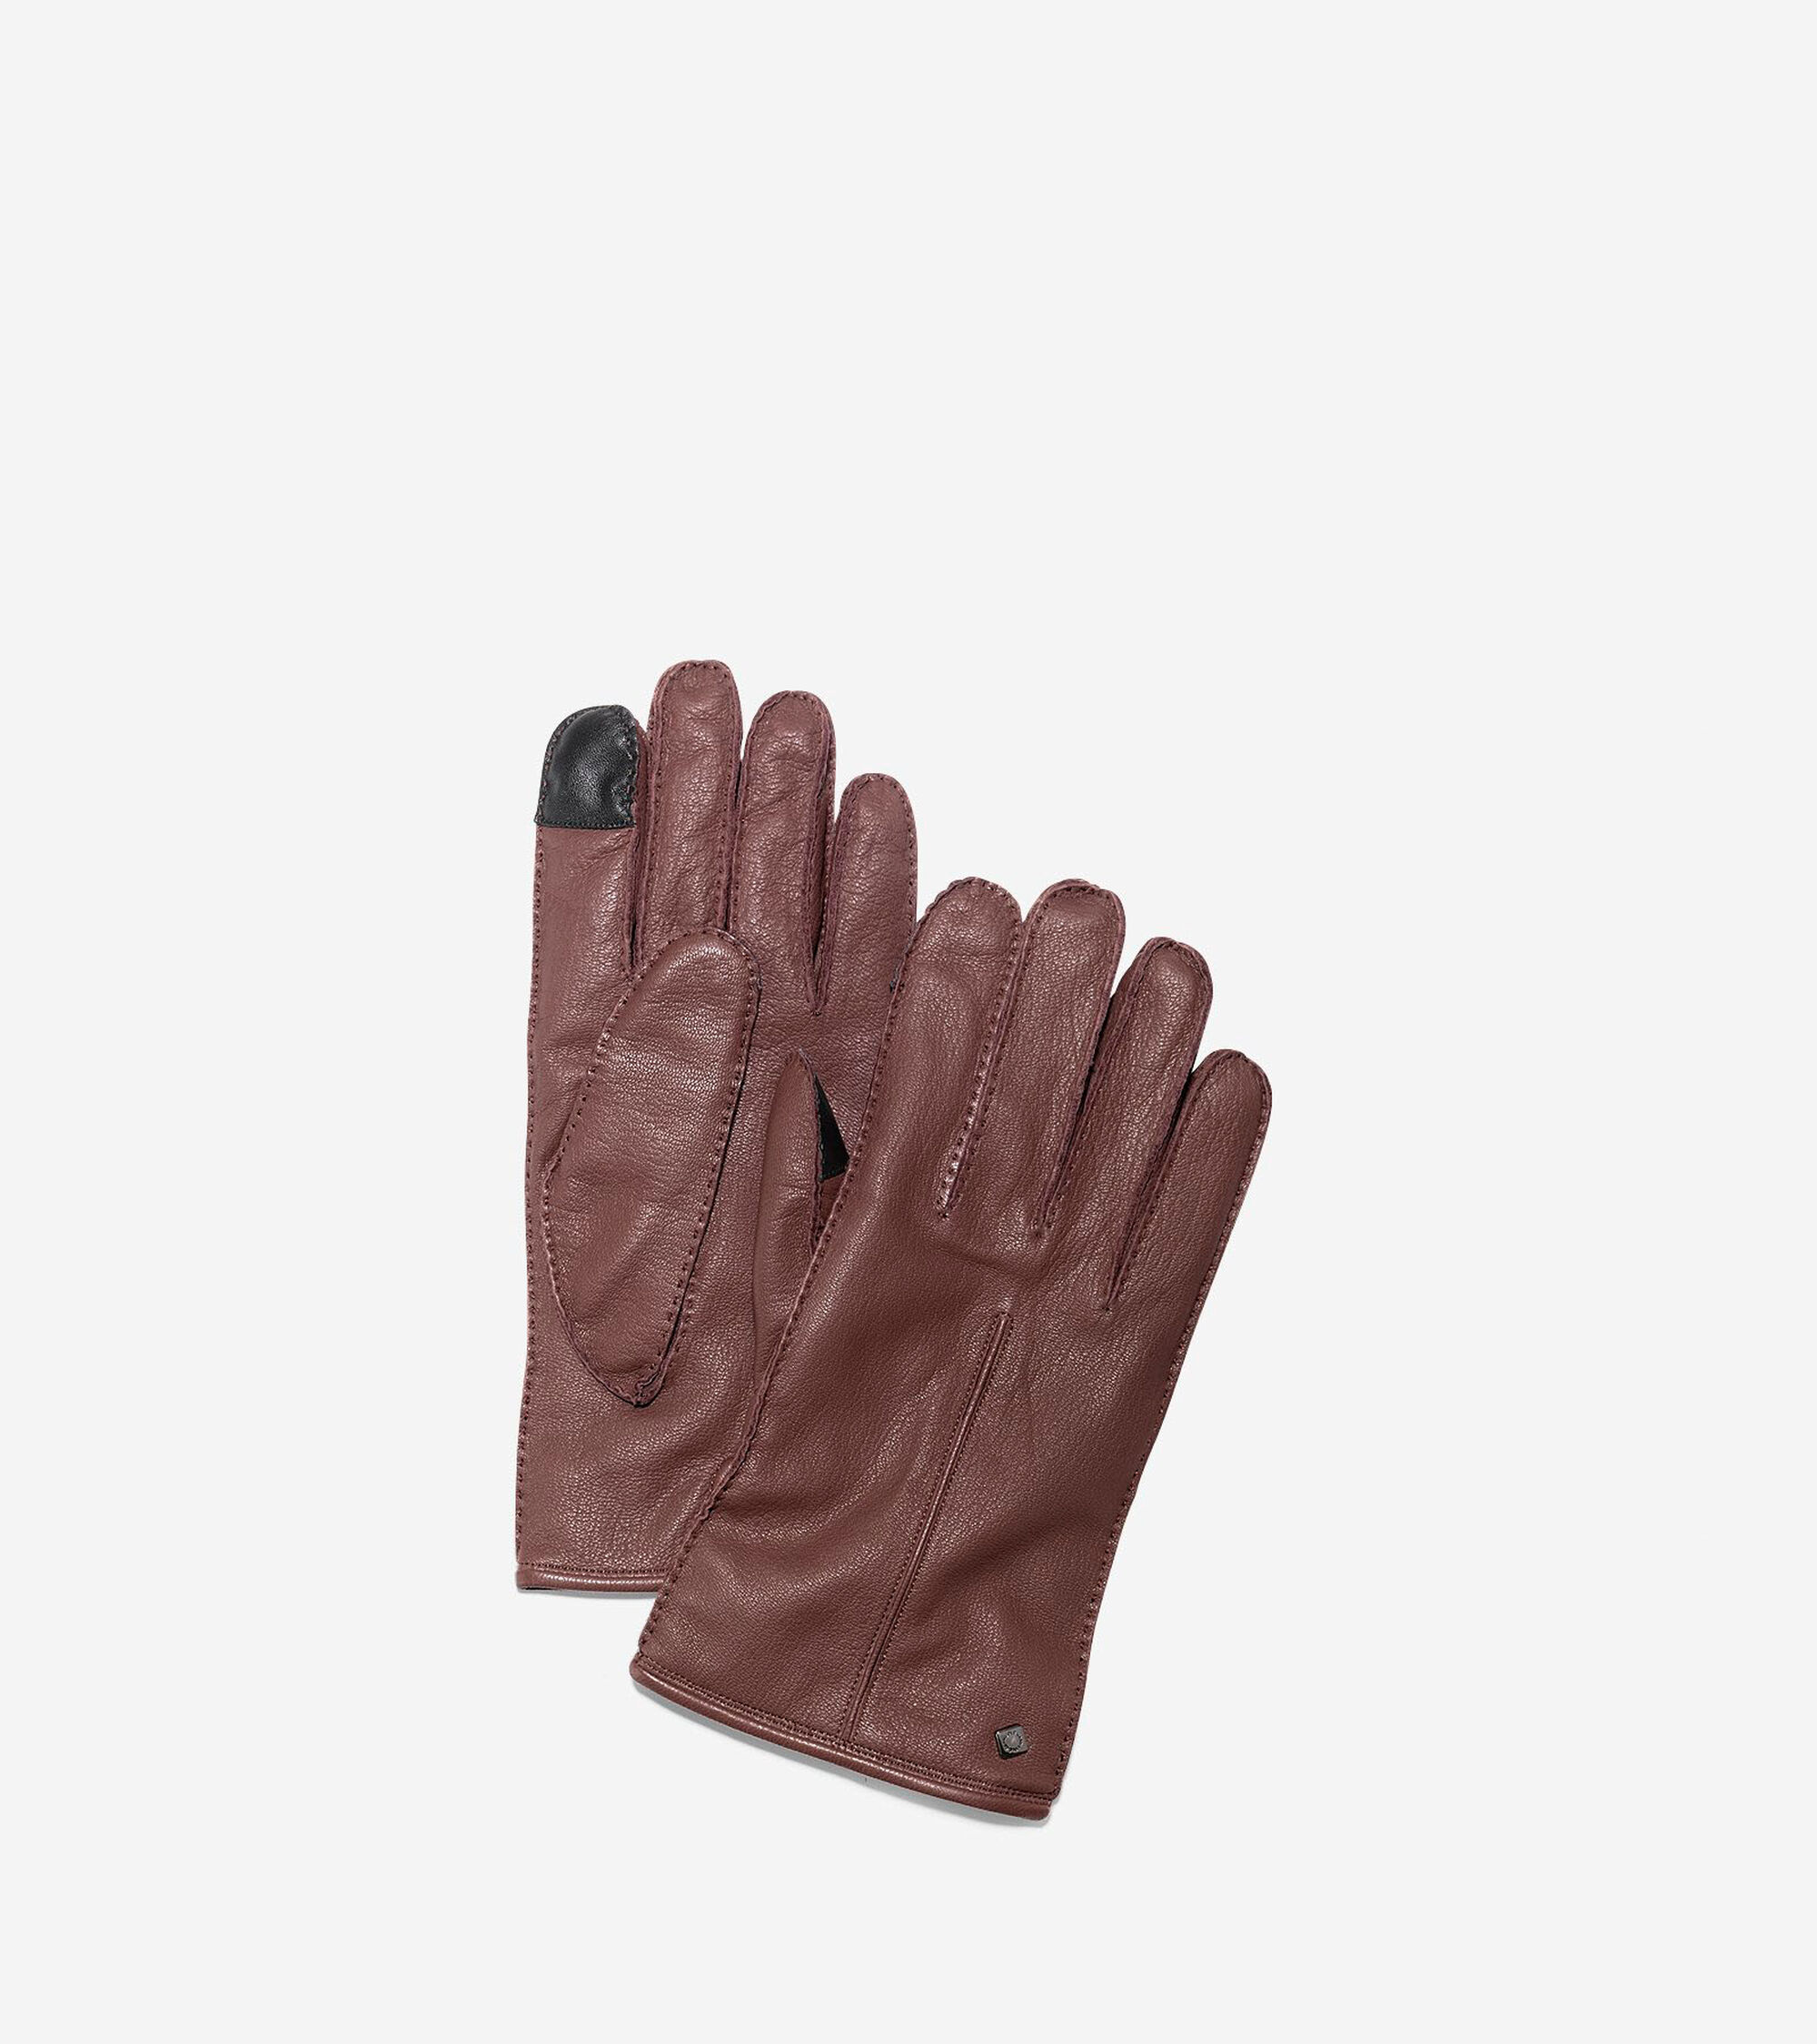 Mens leather kid gloves - Men S Handsewn Deerskin Leather Gloves